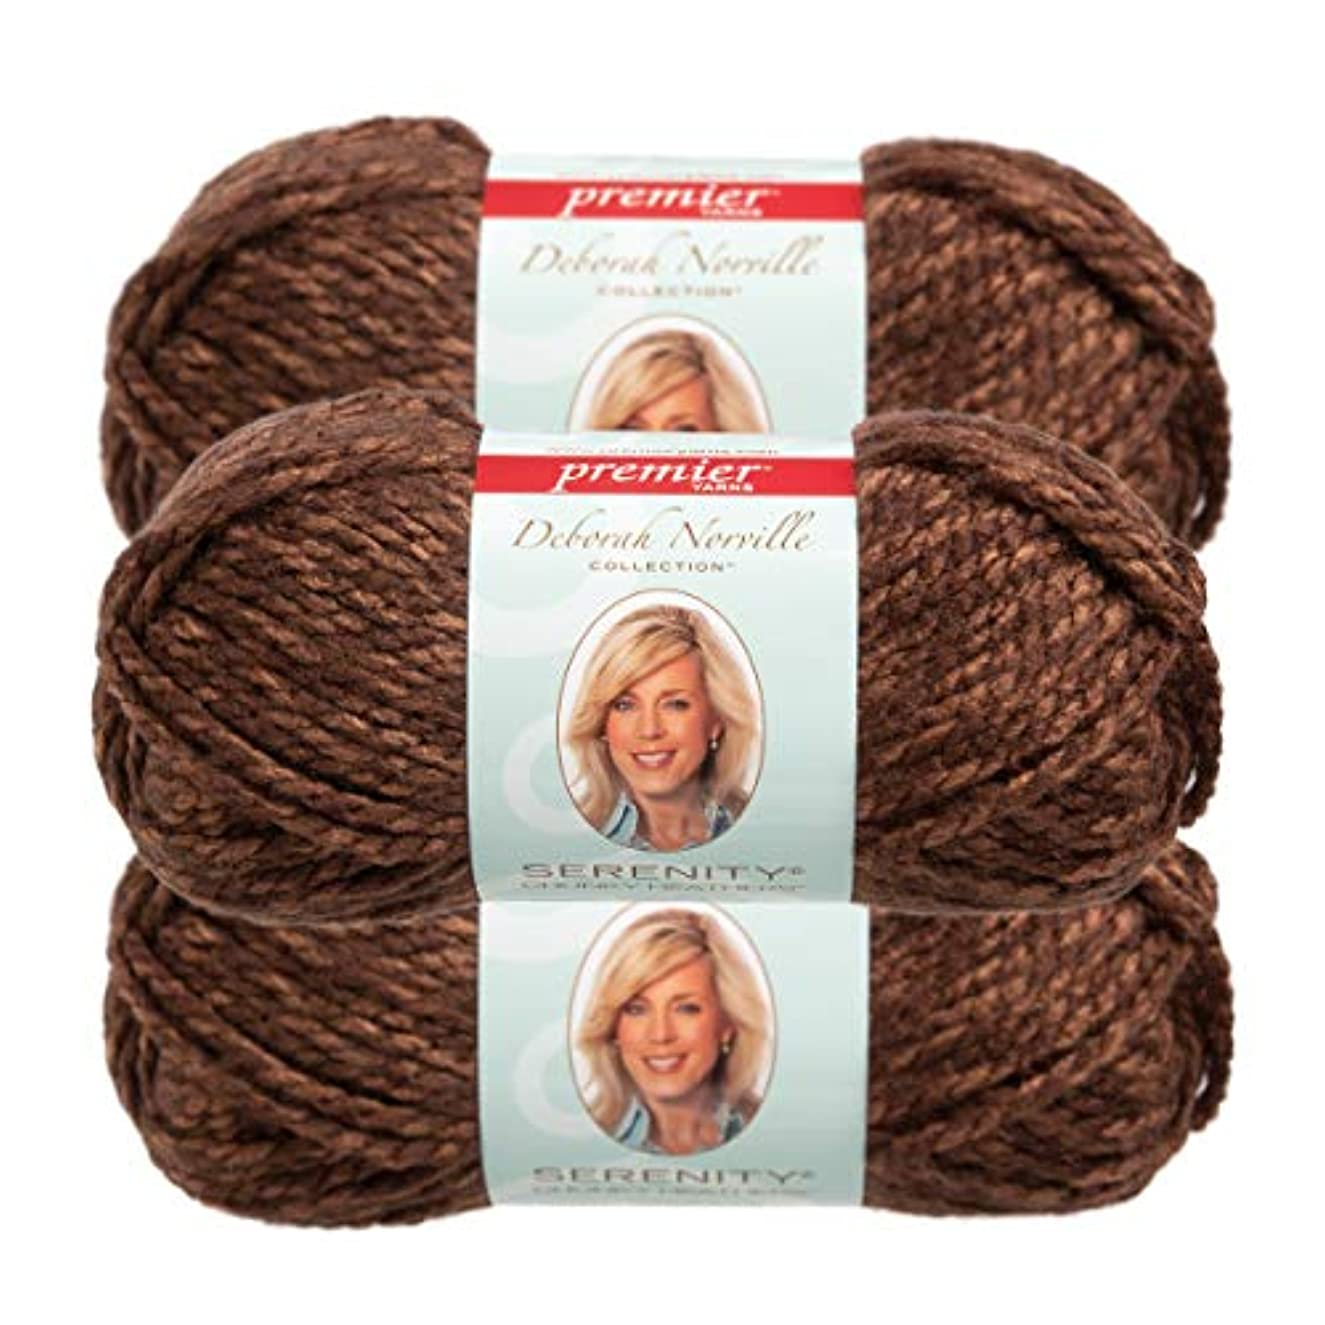 Premier Yarns (3 Pack Deborah Norville Serenity 100% Acrylic Soft Coffee Heather Brown Yarn for Knitting Crocheting Chunky #5